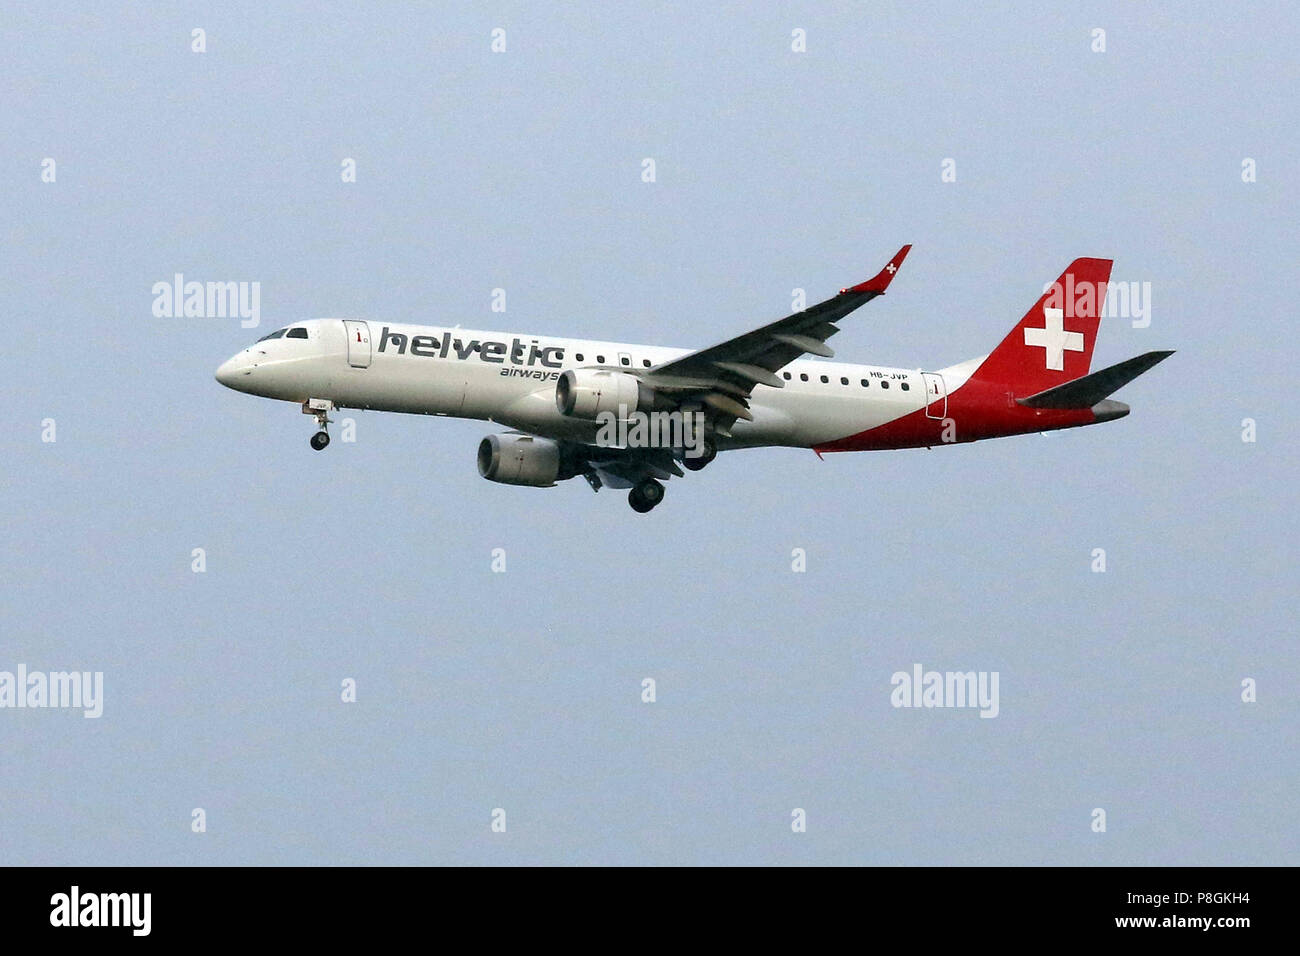 Hanover, Germany, Embraer ERJ-190LR of the airline Helvetic Airways - Stock Image